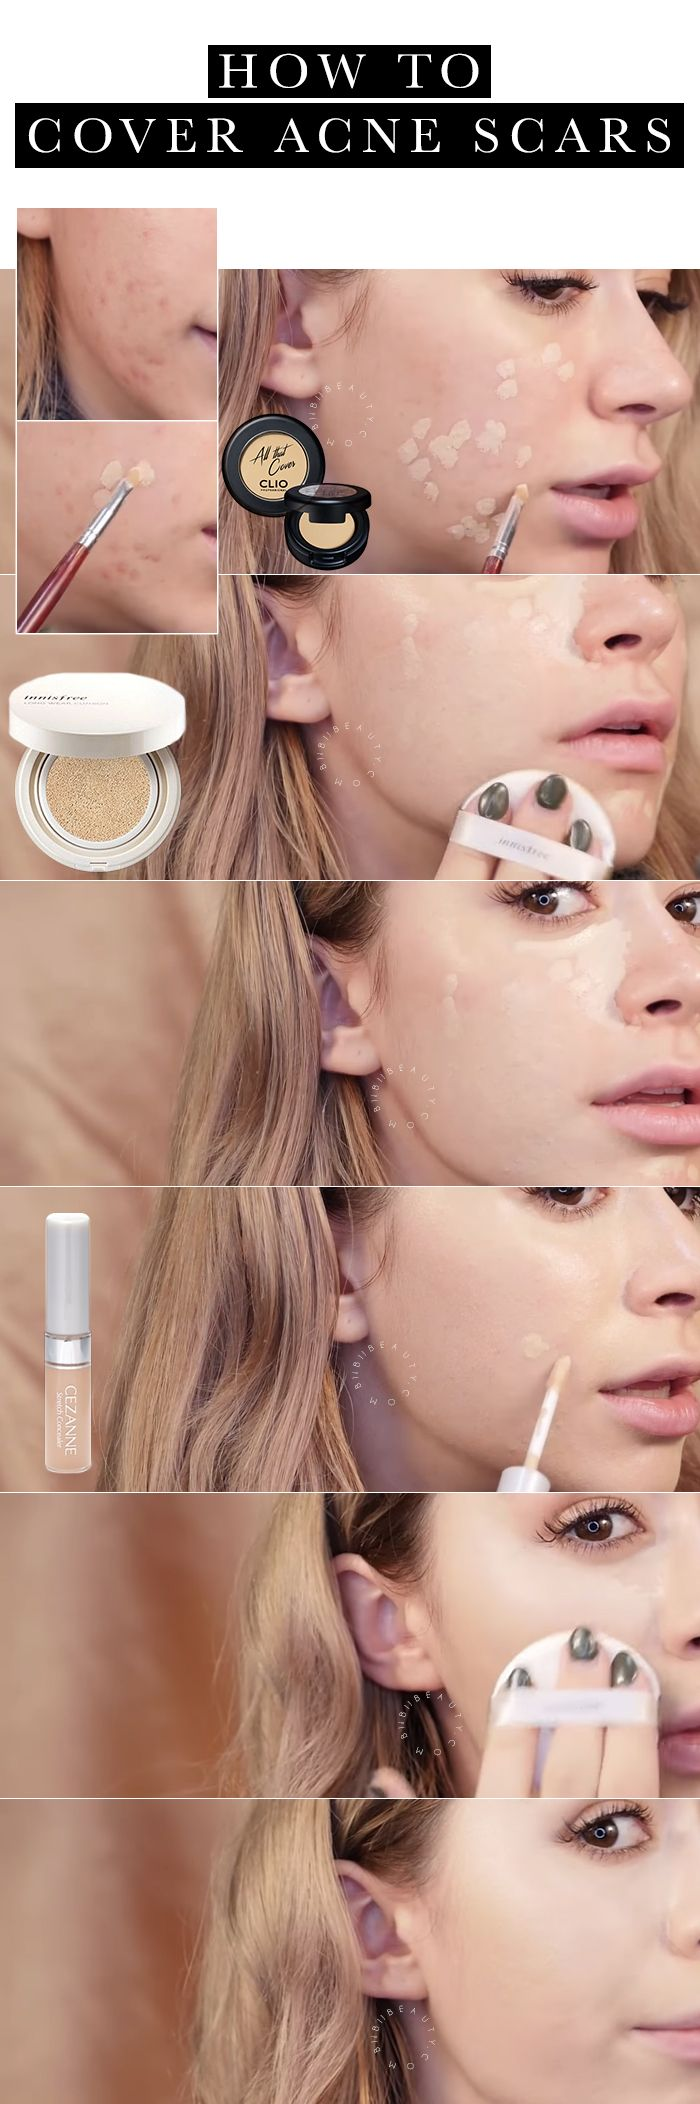 HOW TO COVER ACNE SCARS biibiibeauty